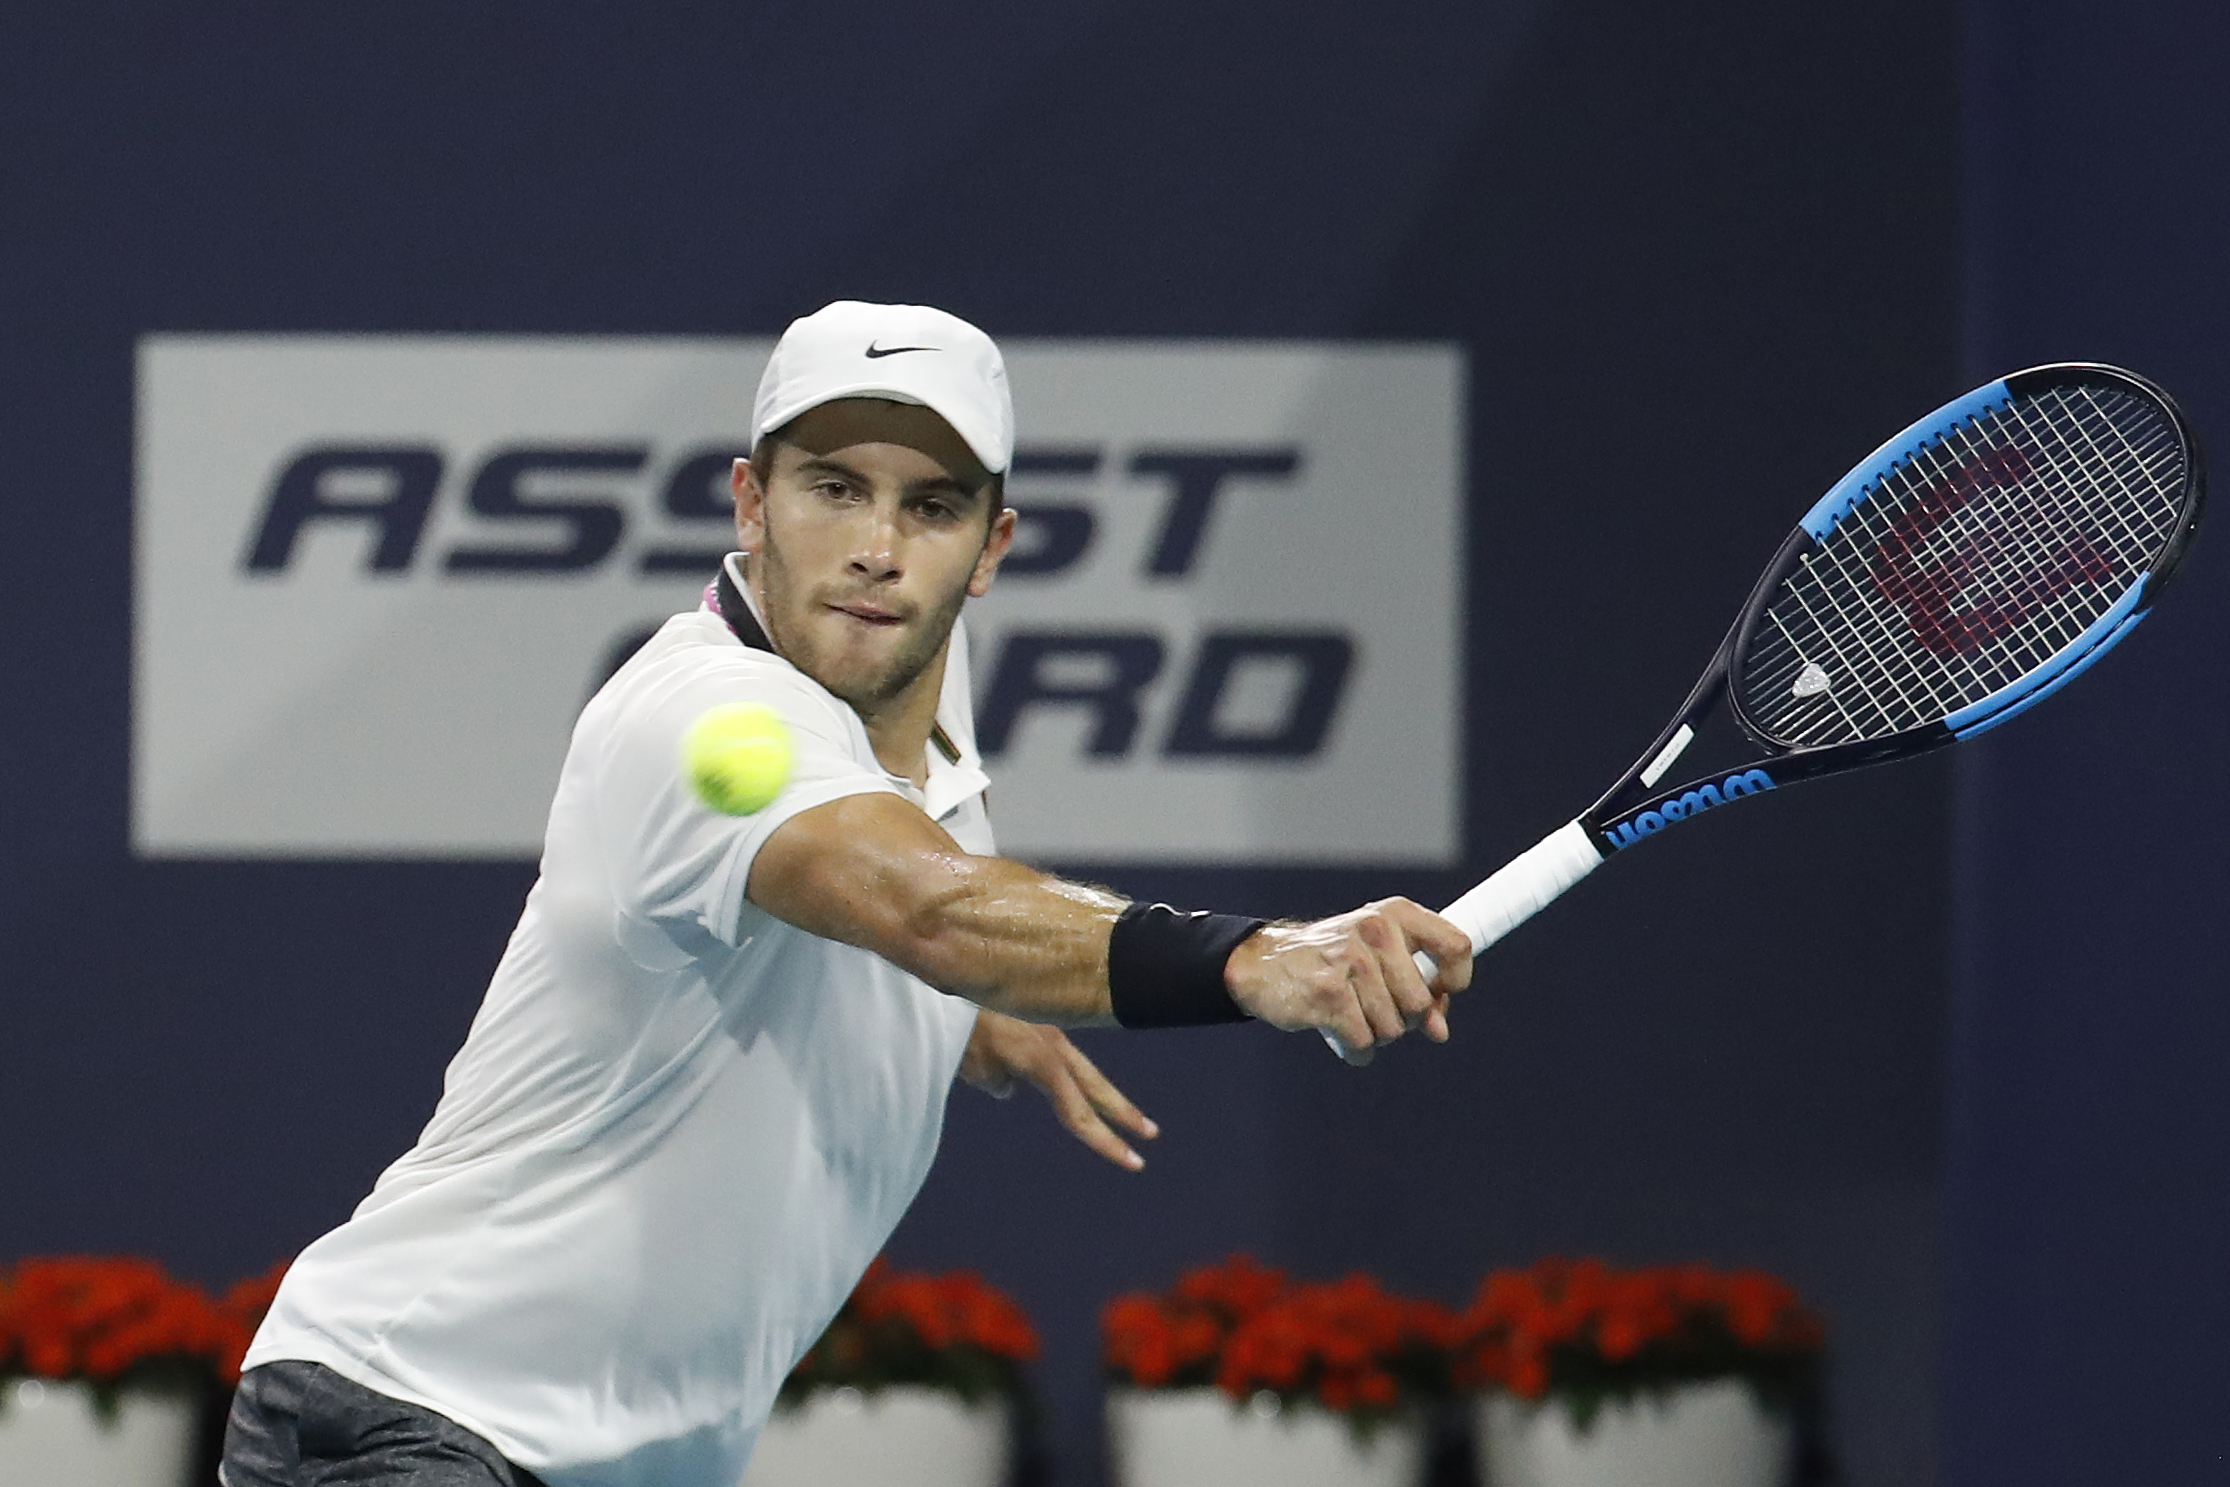 Mar 27, 2019; Miami Gardens, FL, USA; Borna Coric of Croatia hits a backhand against Felix Auger-Aliassime of Canada (not pictured) in a mens quarterfinal of the Miami Open at Miami Open Tennis Complex. Mandatory Credit: Geoff Burke-USA TODAY Sports - 12425379